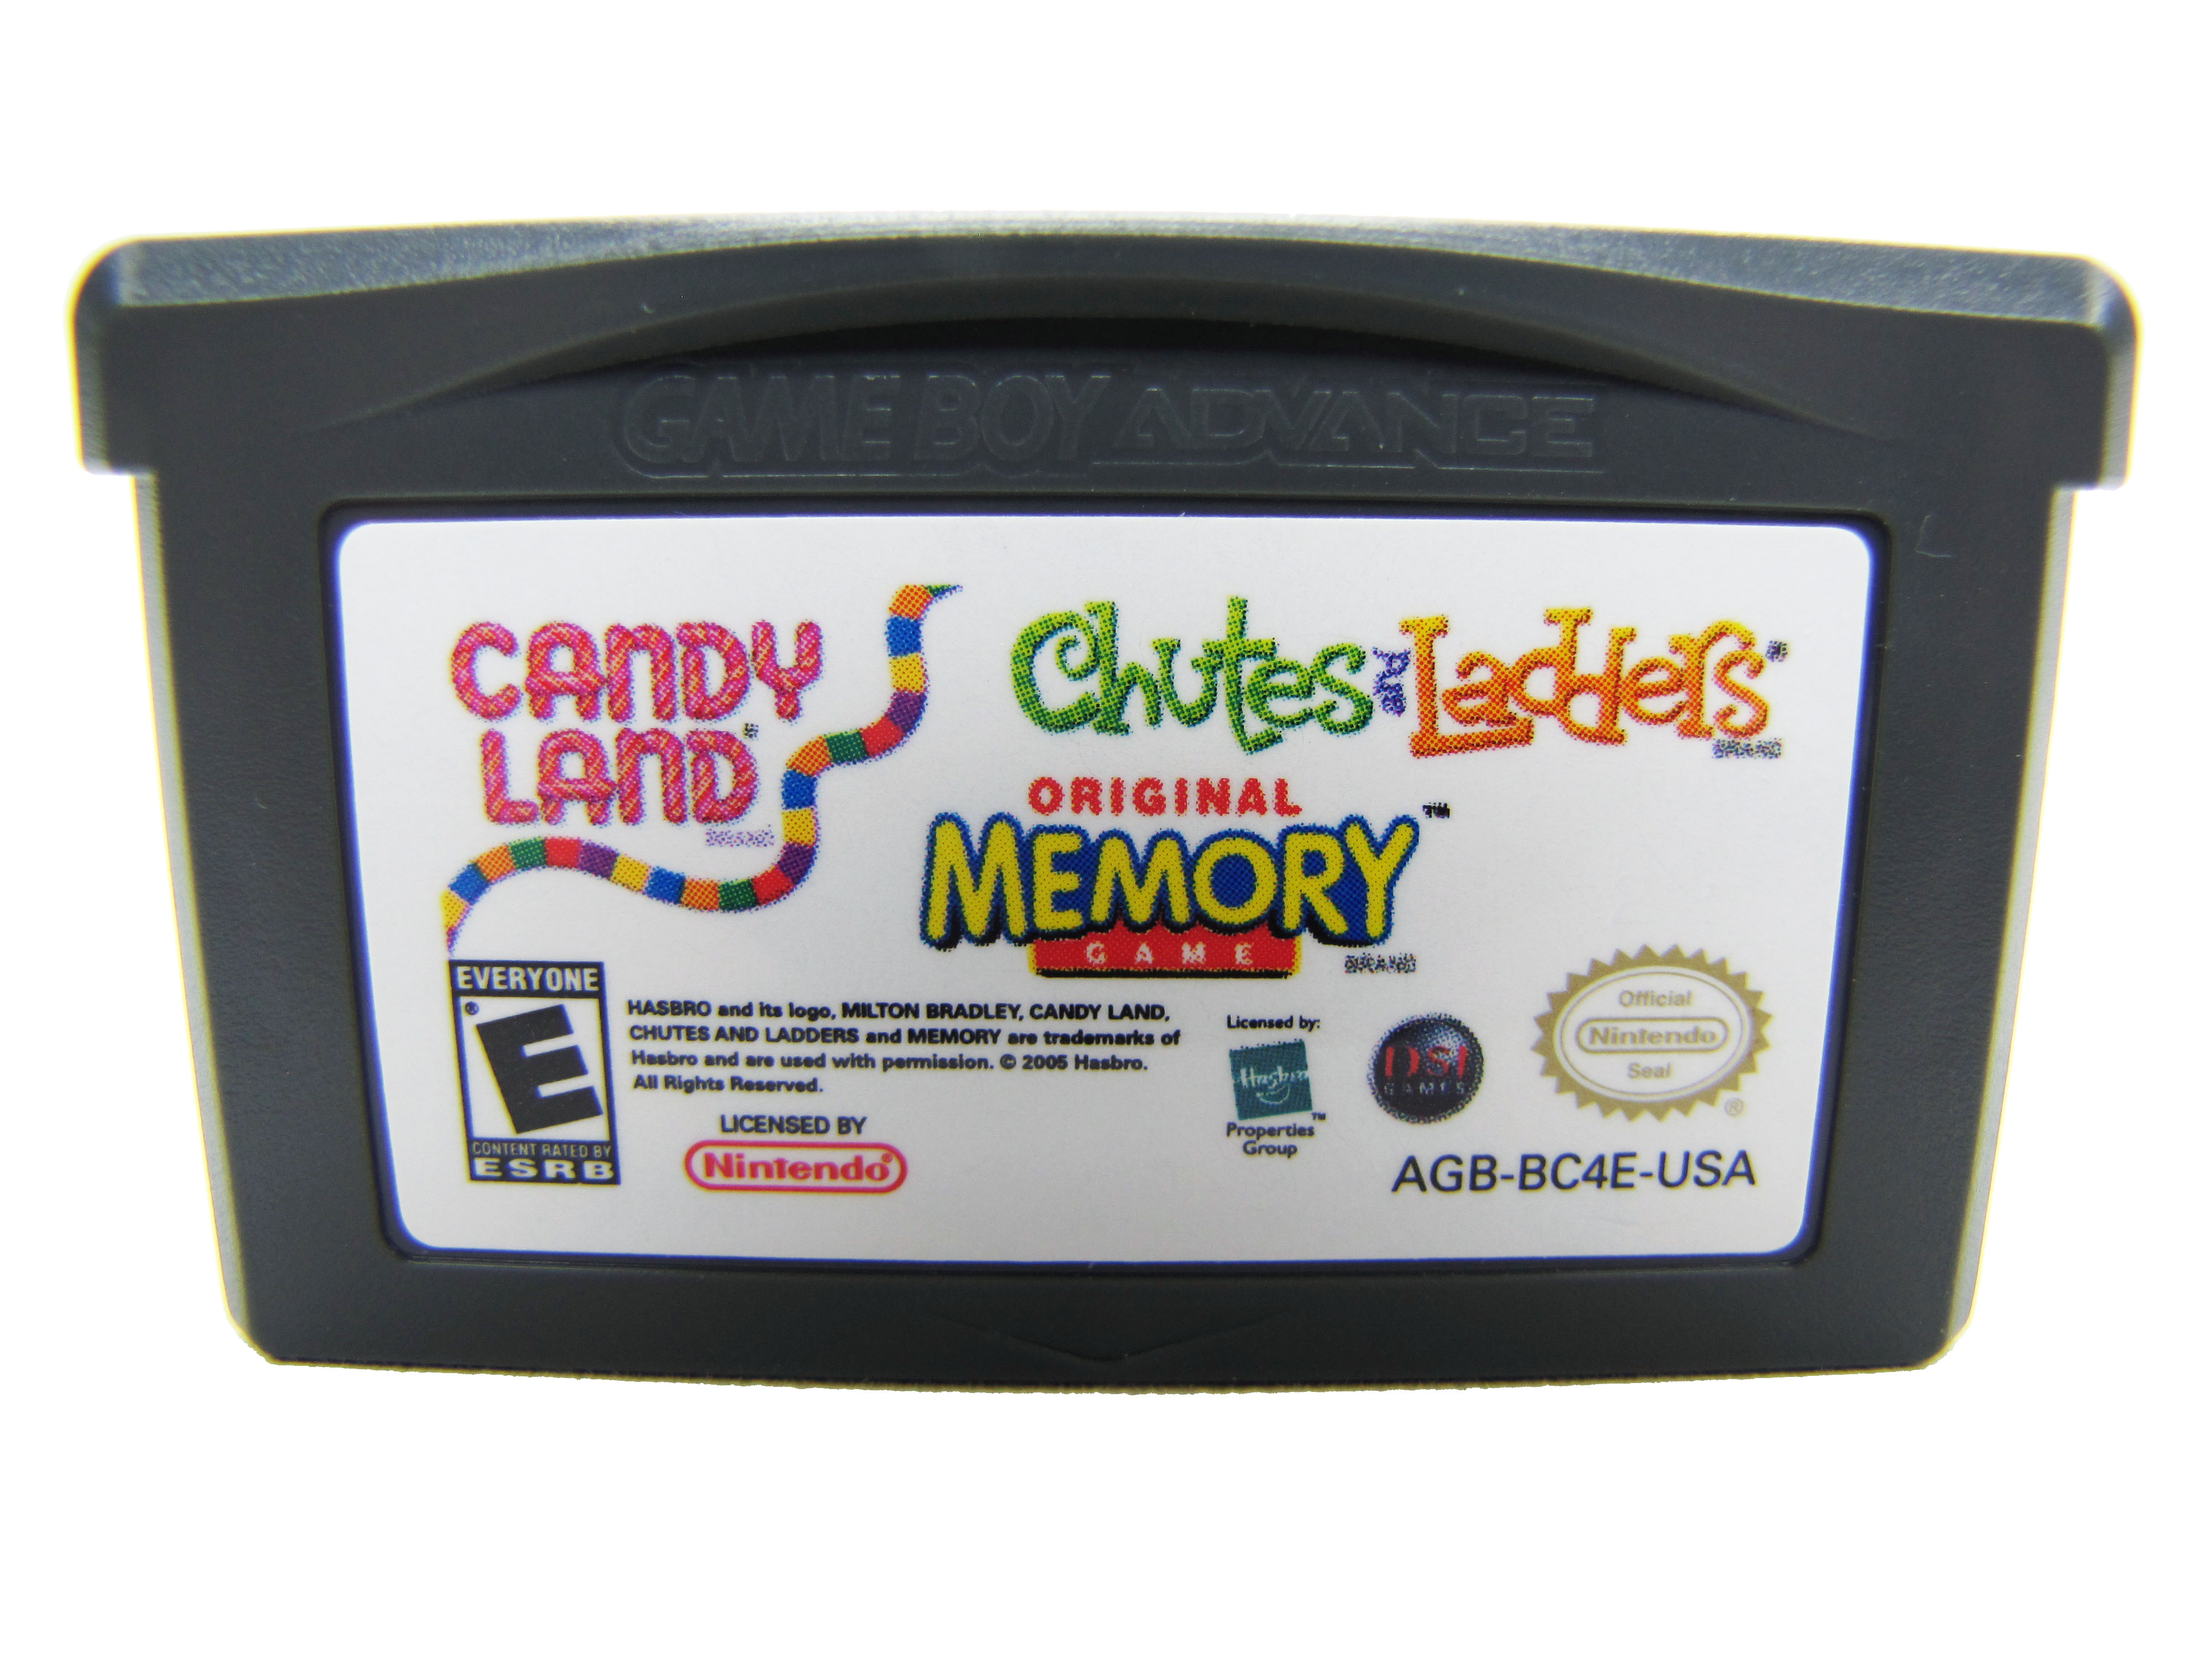 Game Boy Advance Candy Land Chutes & Ladders Memory - 2005